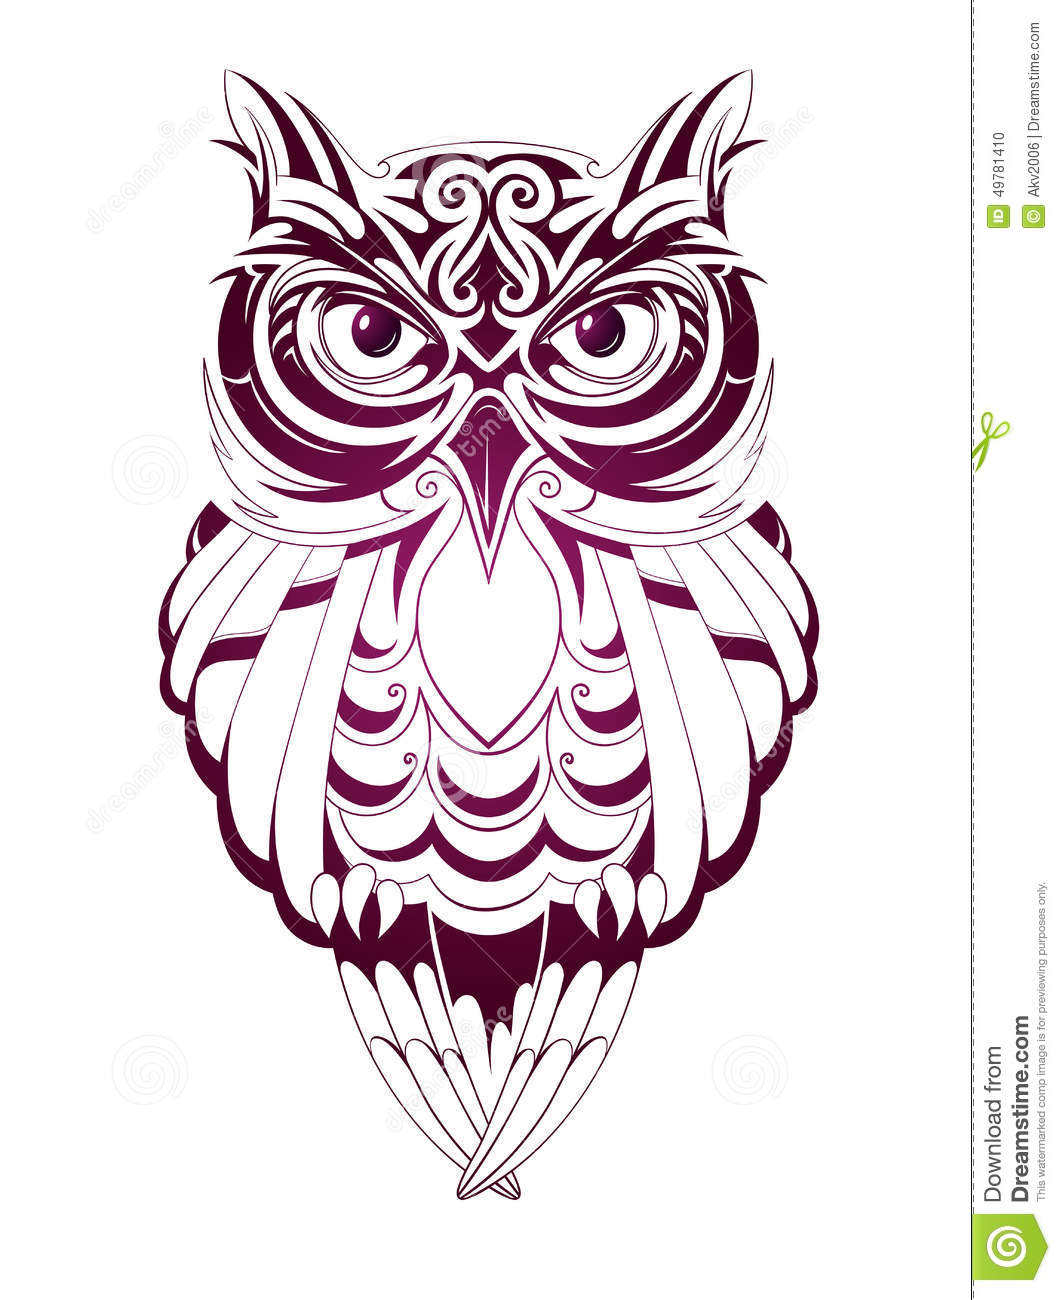 Illustration Tattoos: Owl Tattoo Stock Vector